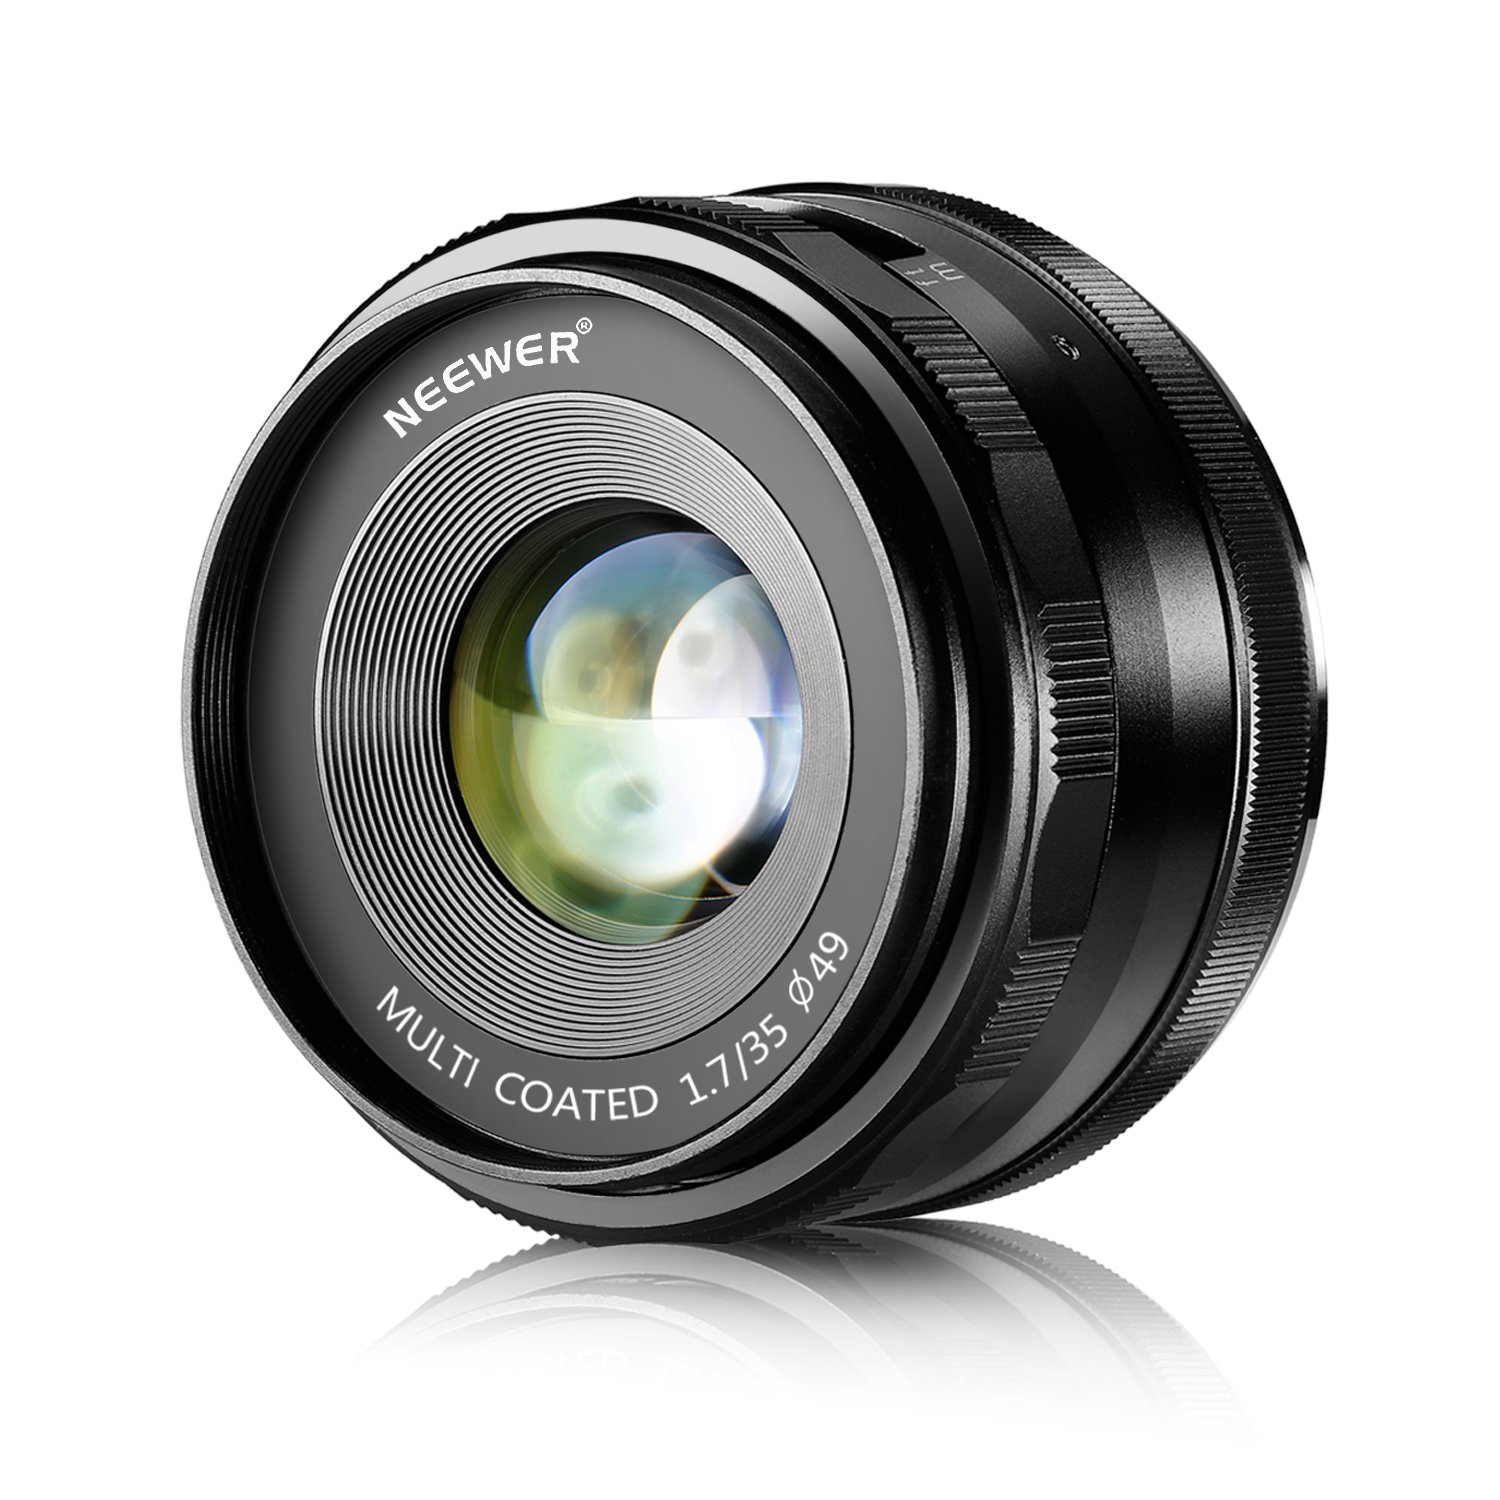 Neewer 35mm F/1.7 Large Aperture Manual Prime Fixed Lens APS-C Sony E-Mount Digital Mirrorless Cameras NEX 3 NEX 3N NEX 5 NEX 5T NEX 5R NEX 6 7 A5000, A5100, A6000, A6100,A6300 A6500 A9 by Neewer